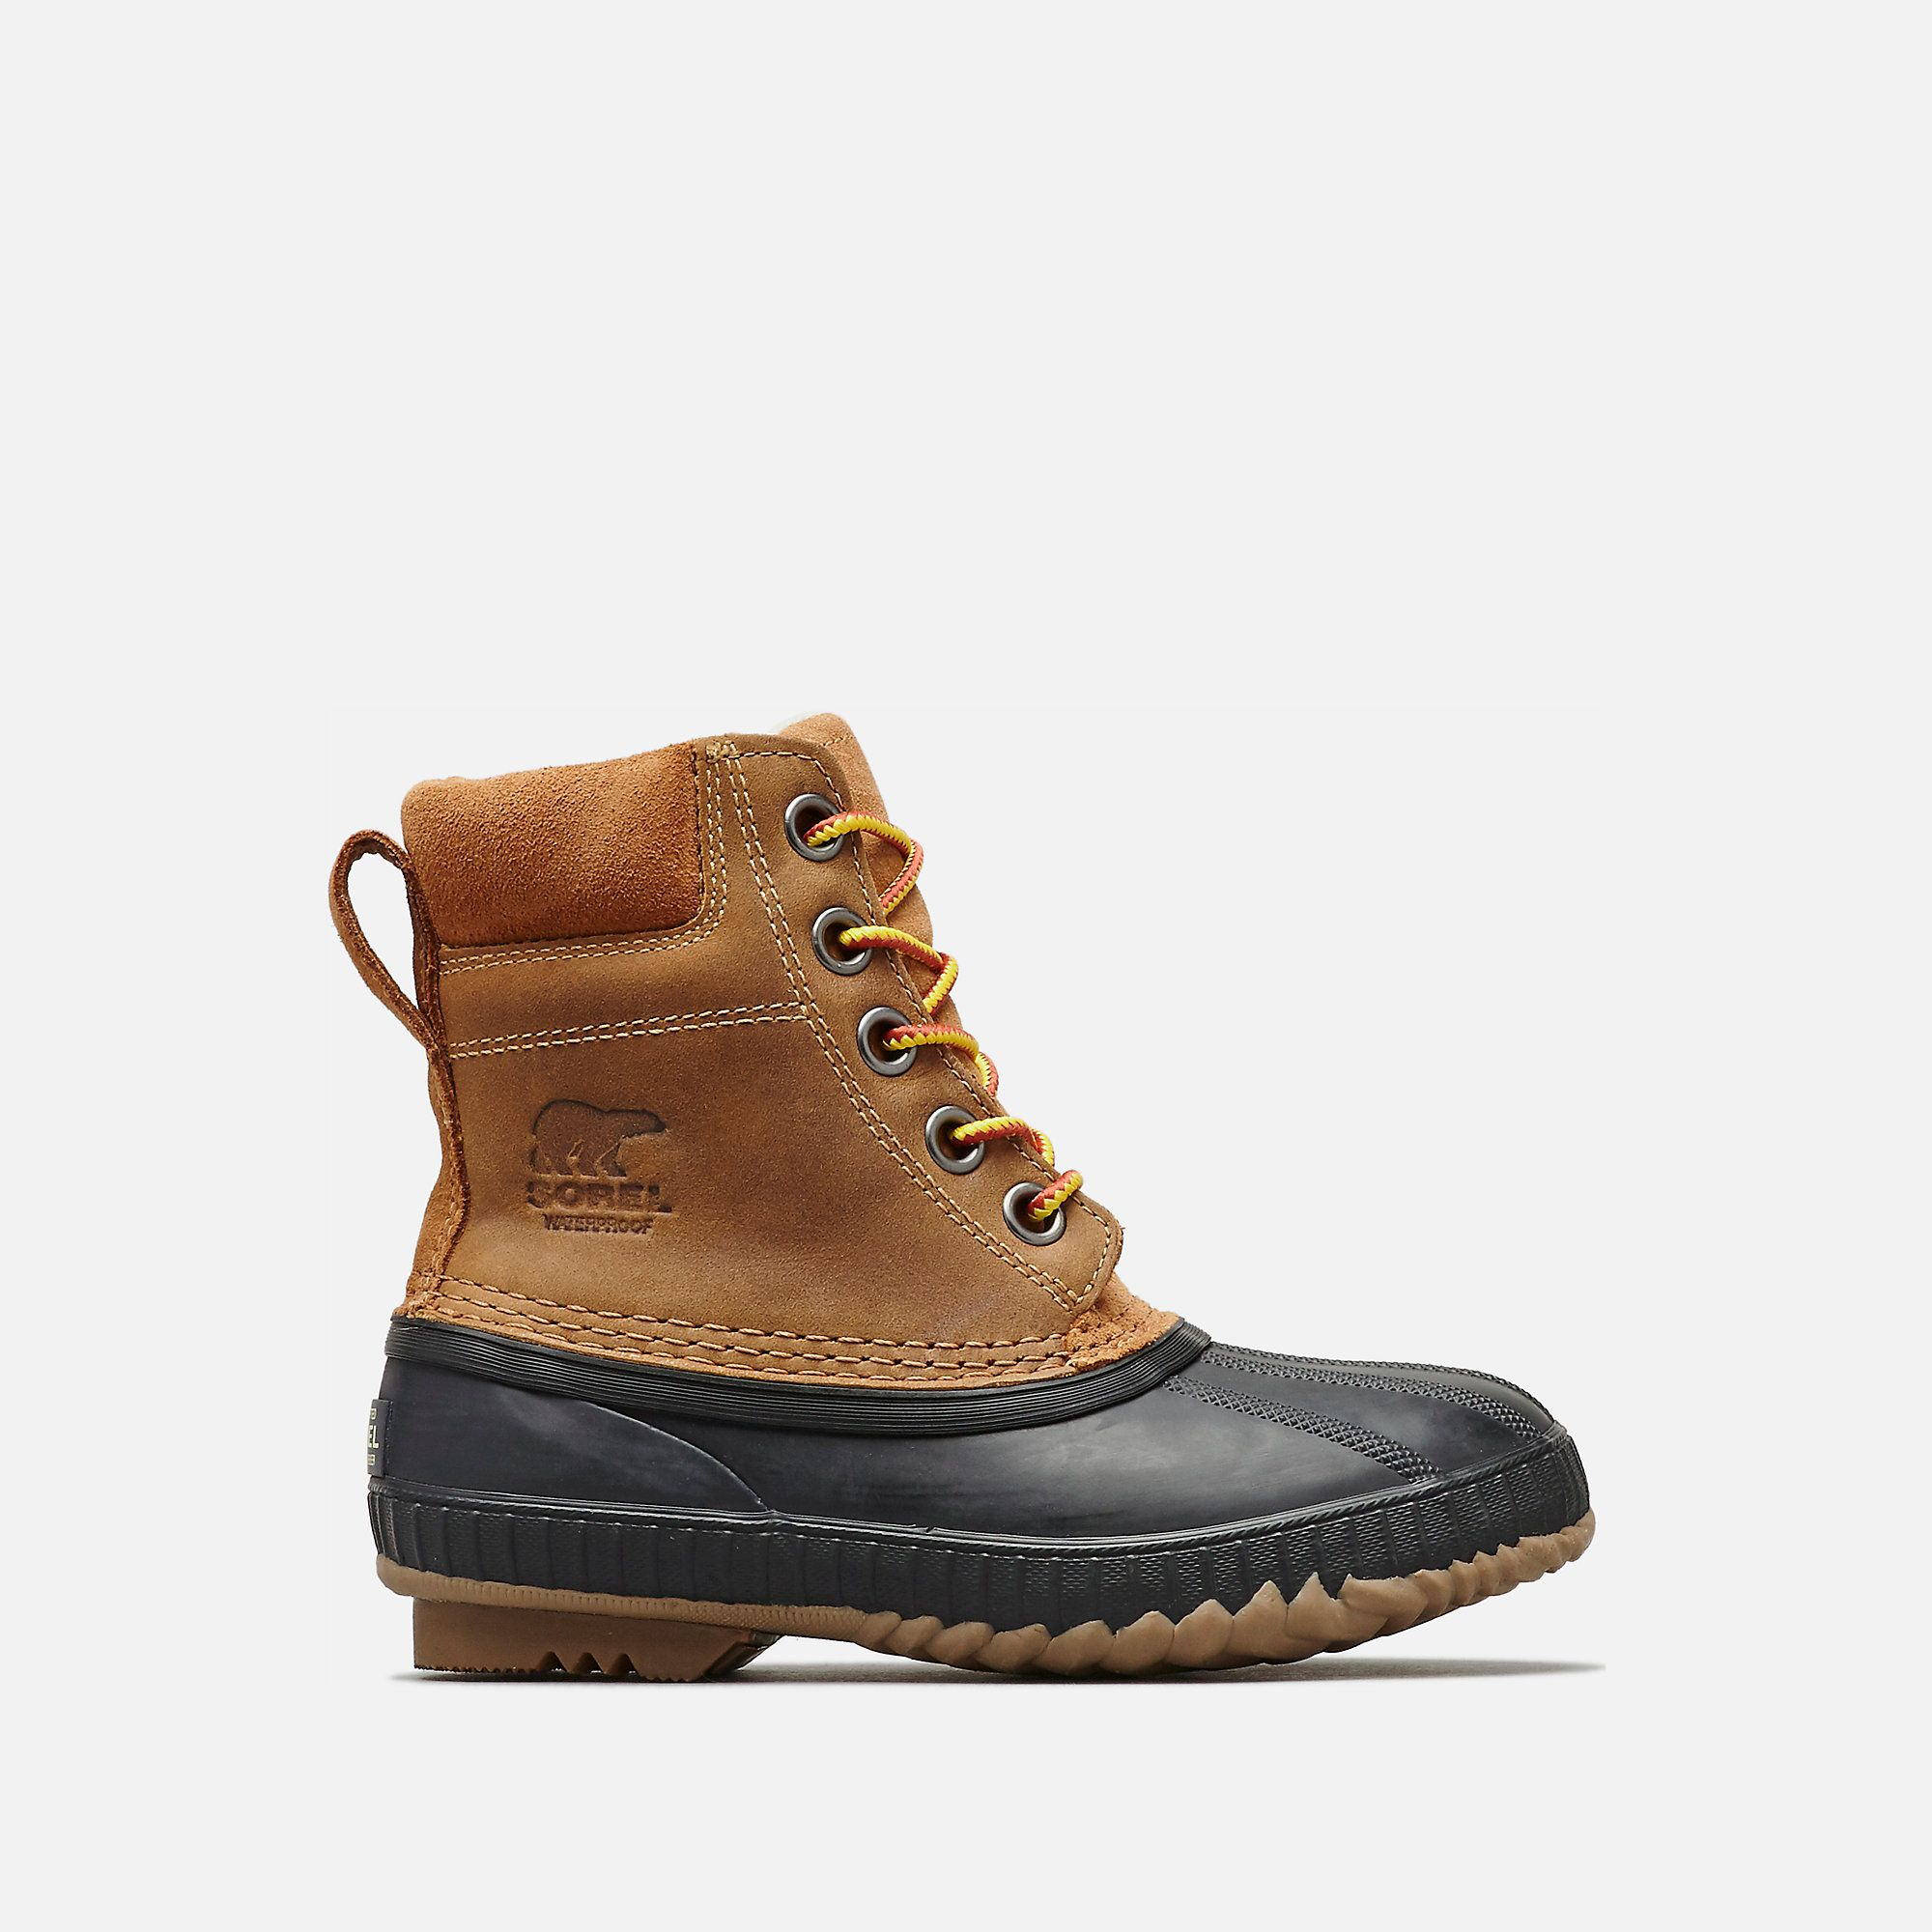 30efcb56d56 Sorel Youth Cheyanne II Lace in 2019 | Products | Pinterest | Petite ...